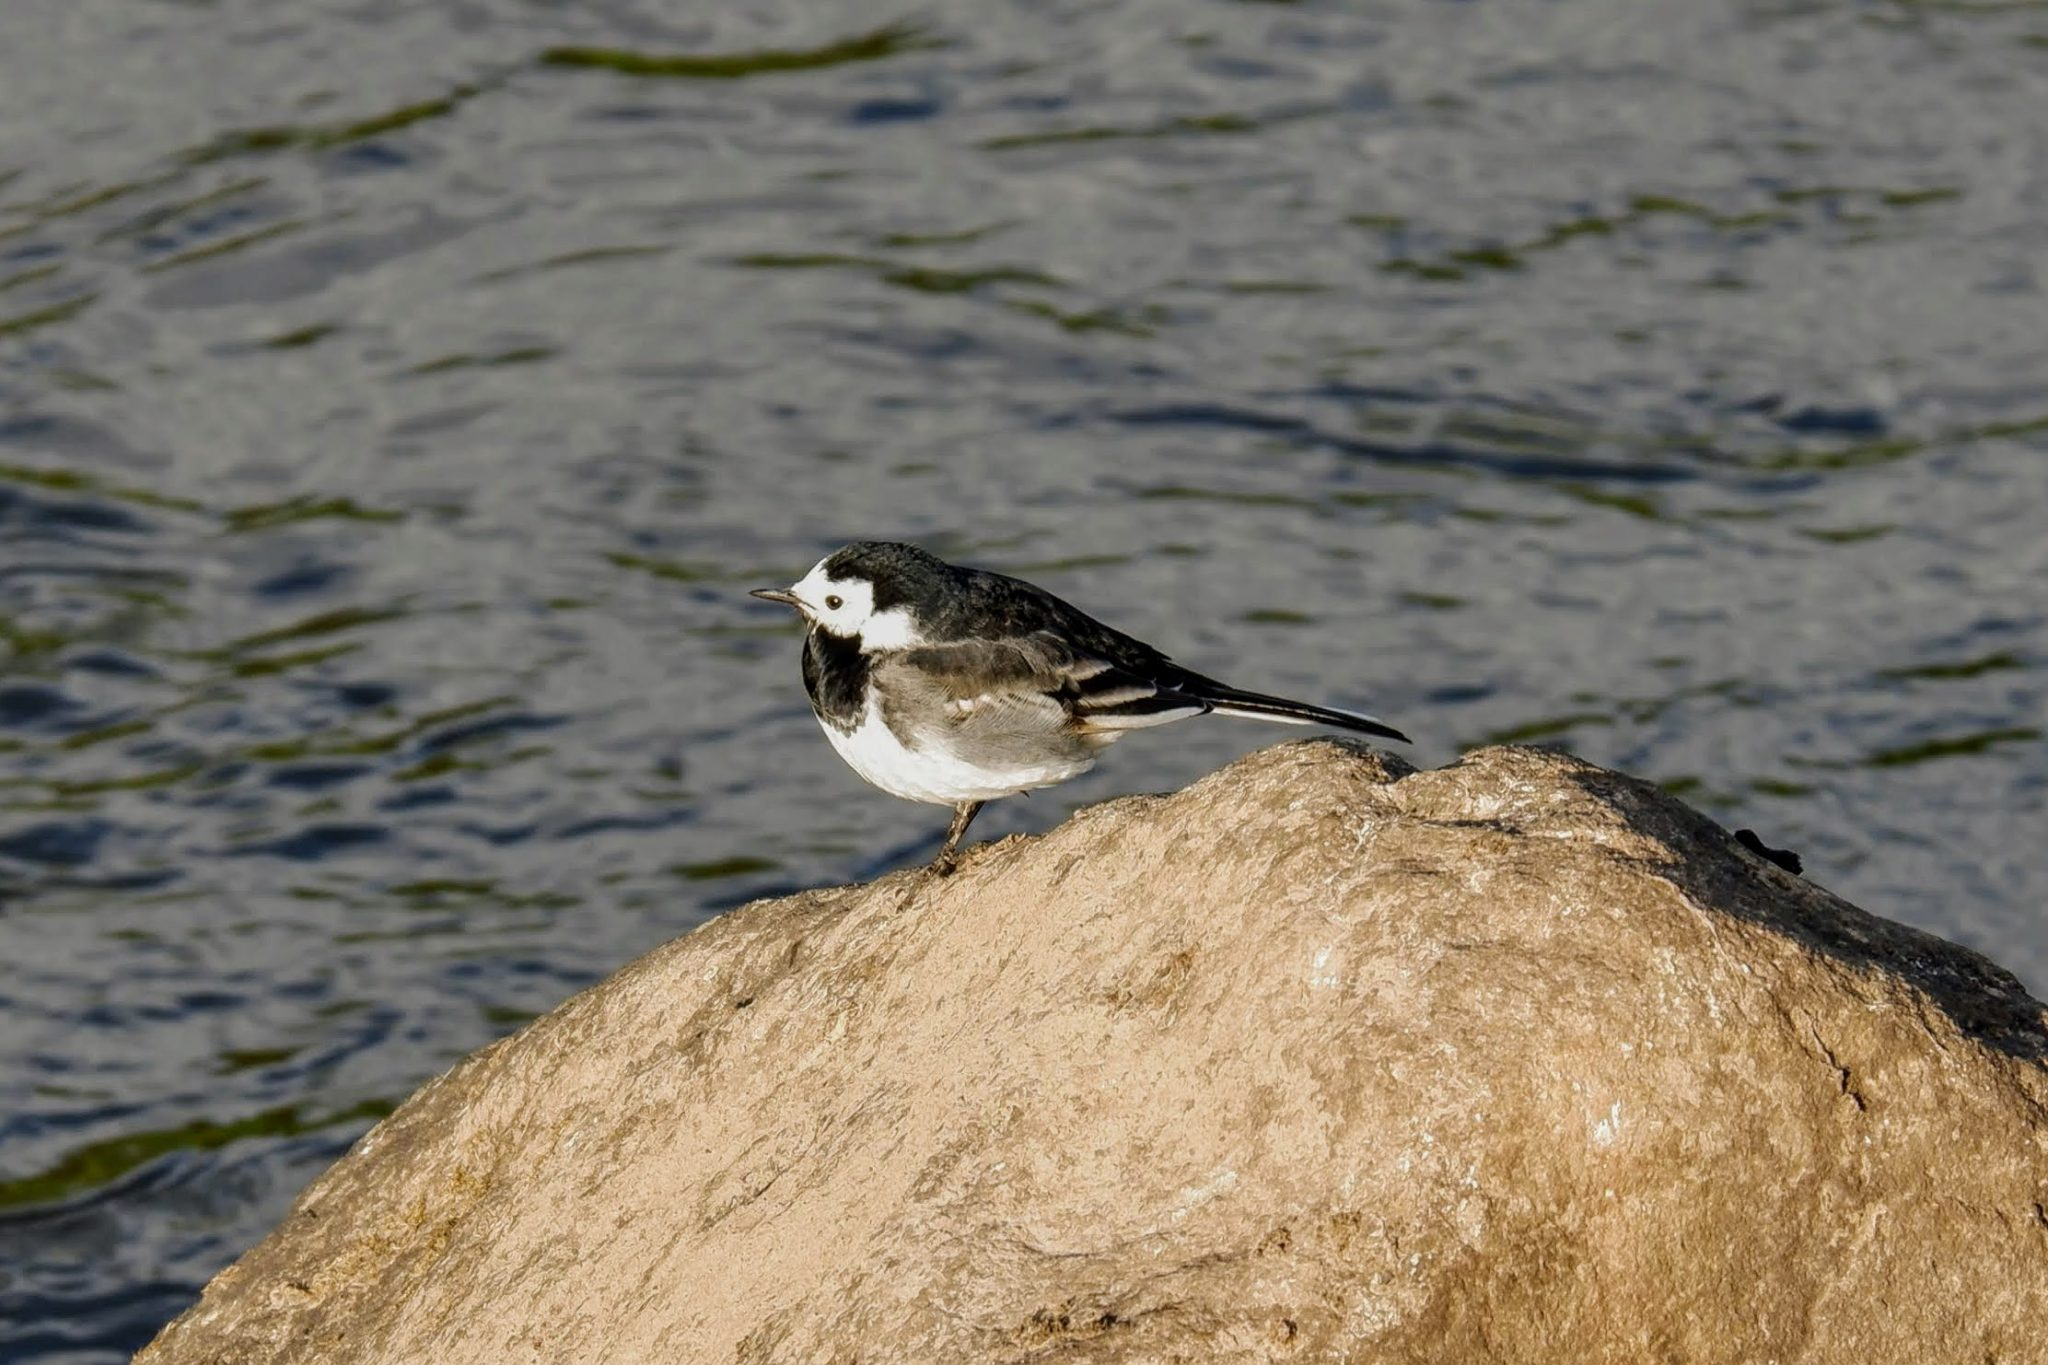 Pied wagtail on the River Mersey, Chorlton